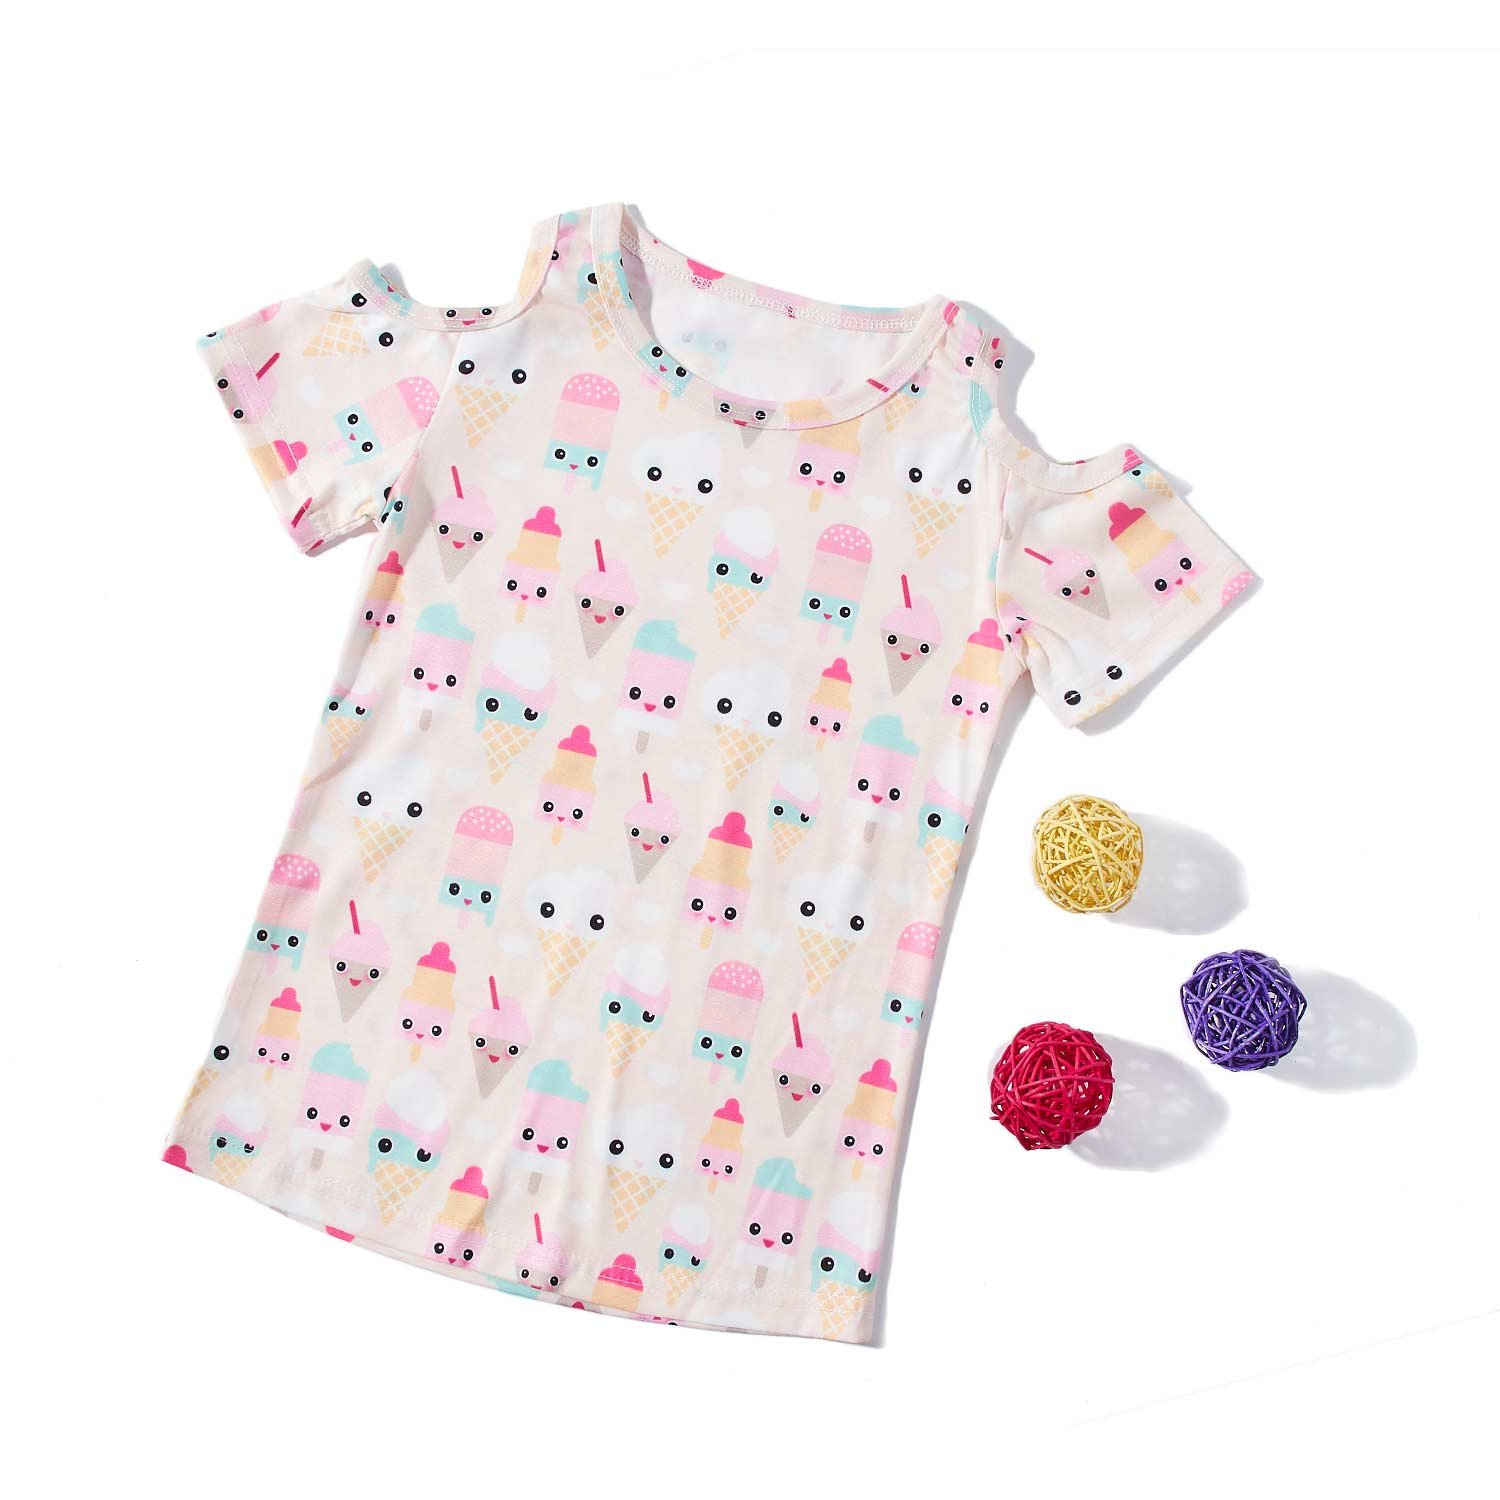 Little Girl Kids Scoop Neck Ice Cream Print Personalized Basic T Shirt Undershirt Top Tee one Pack Size 3